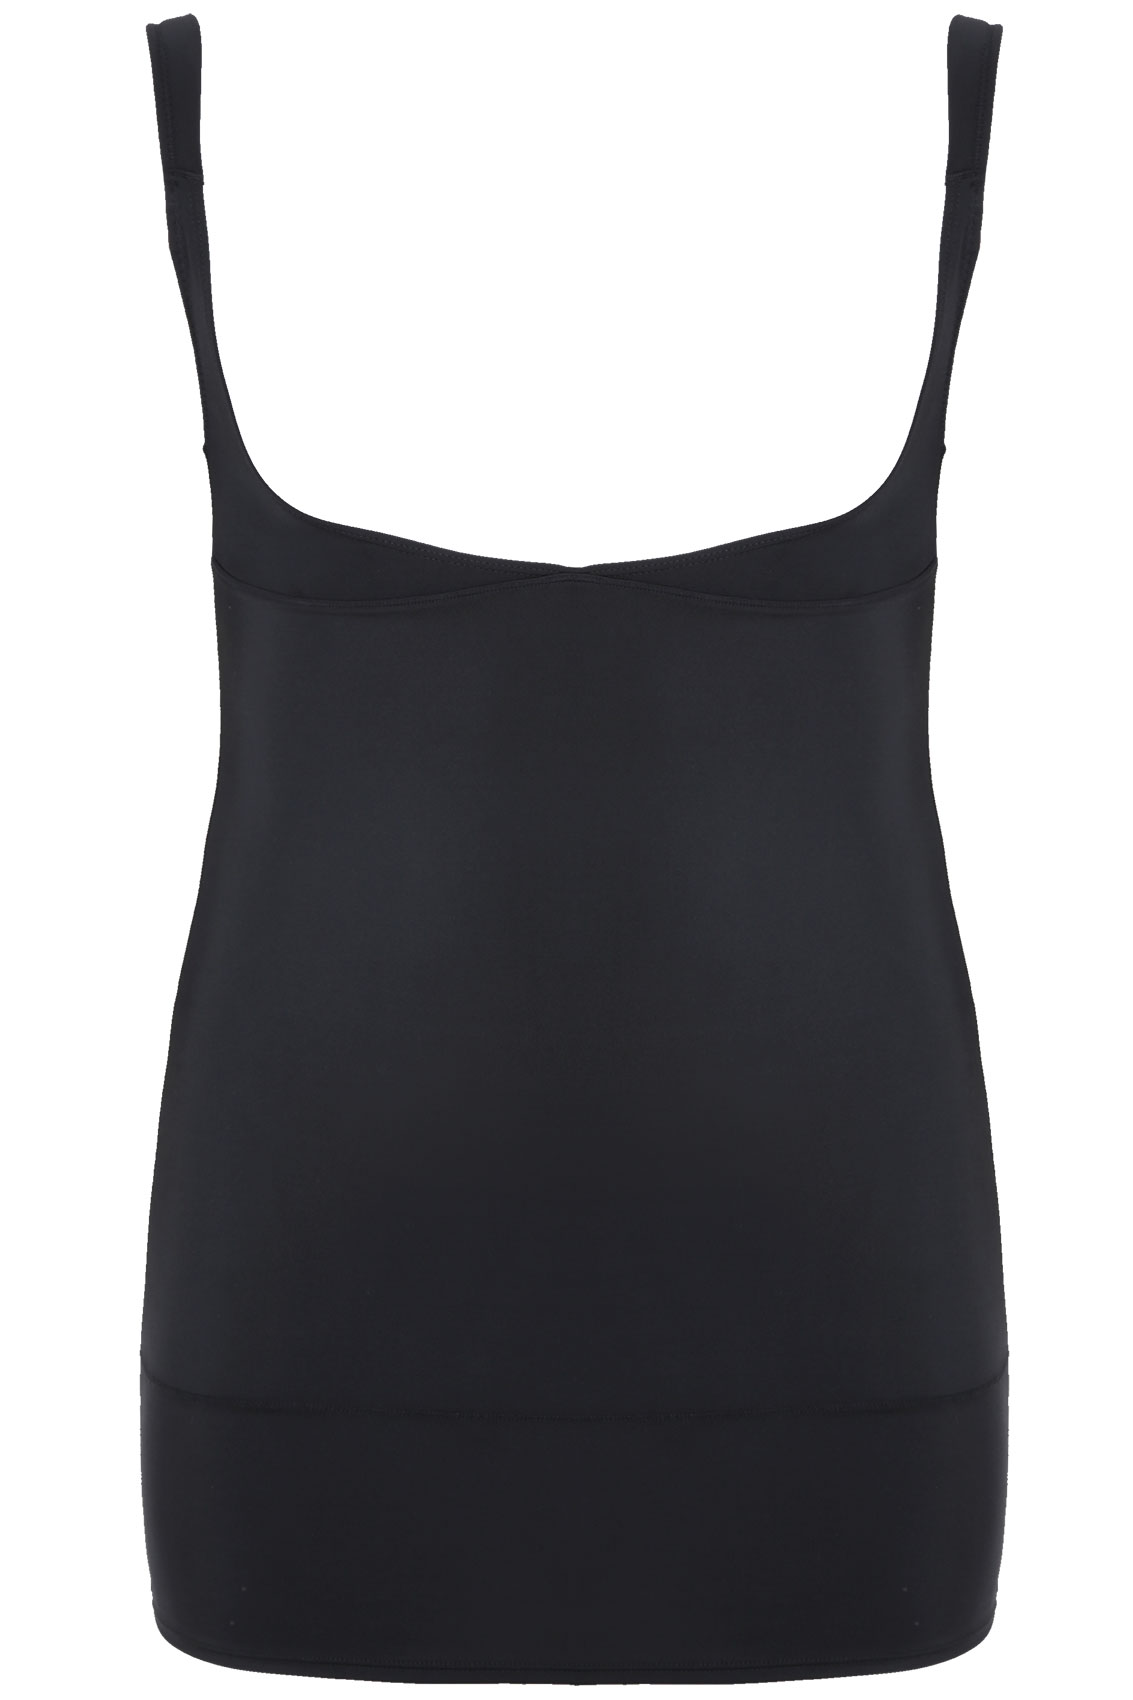 Black Underbra Smoothing Slip Dress With Firm Control Plus -9742